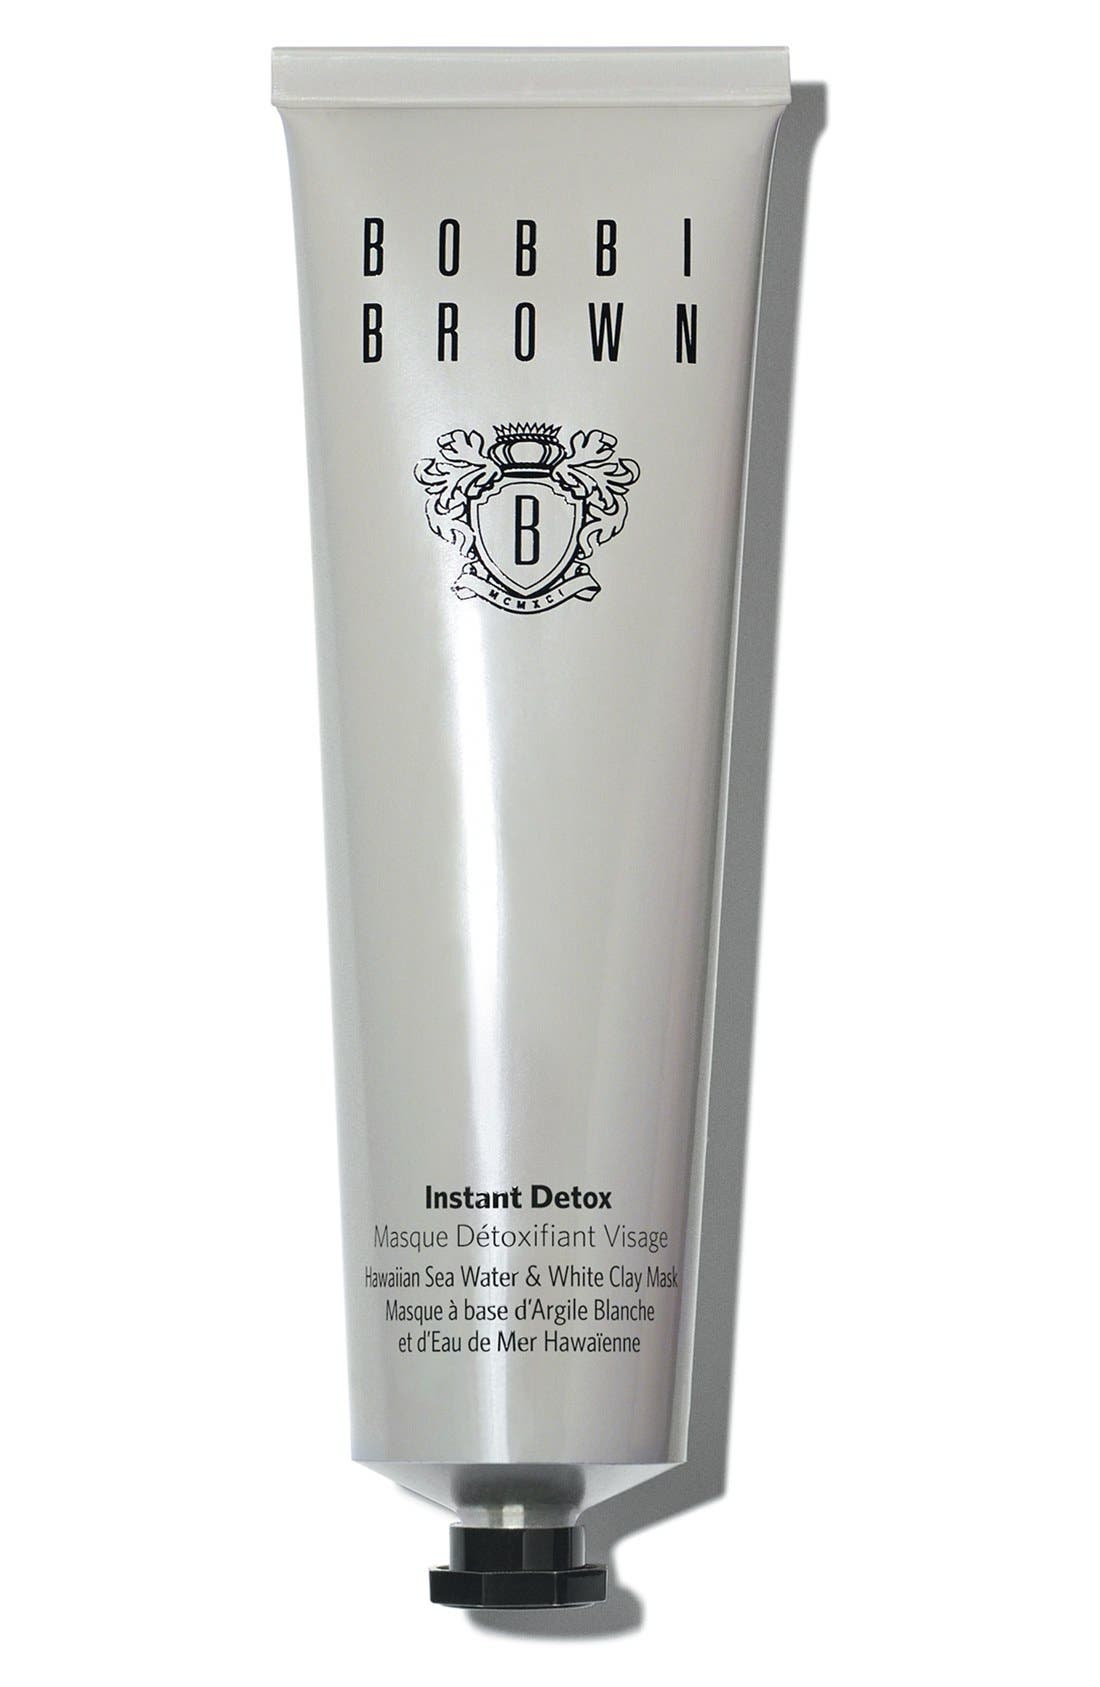 Bobbi Brown 'Instant Detox' Mask